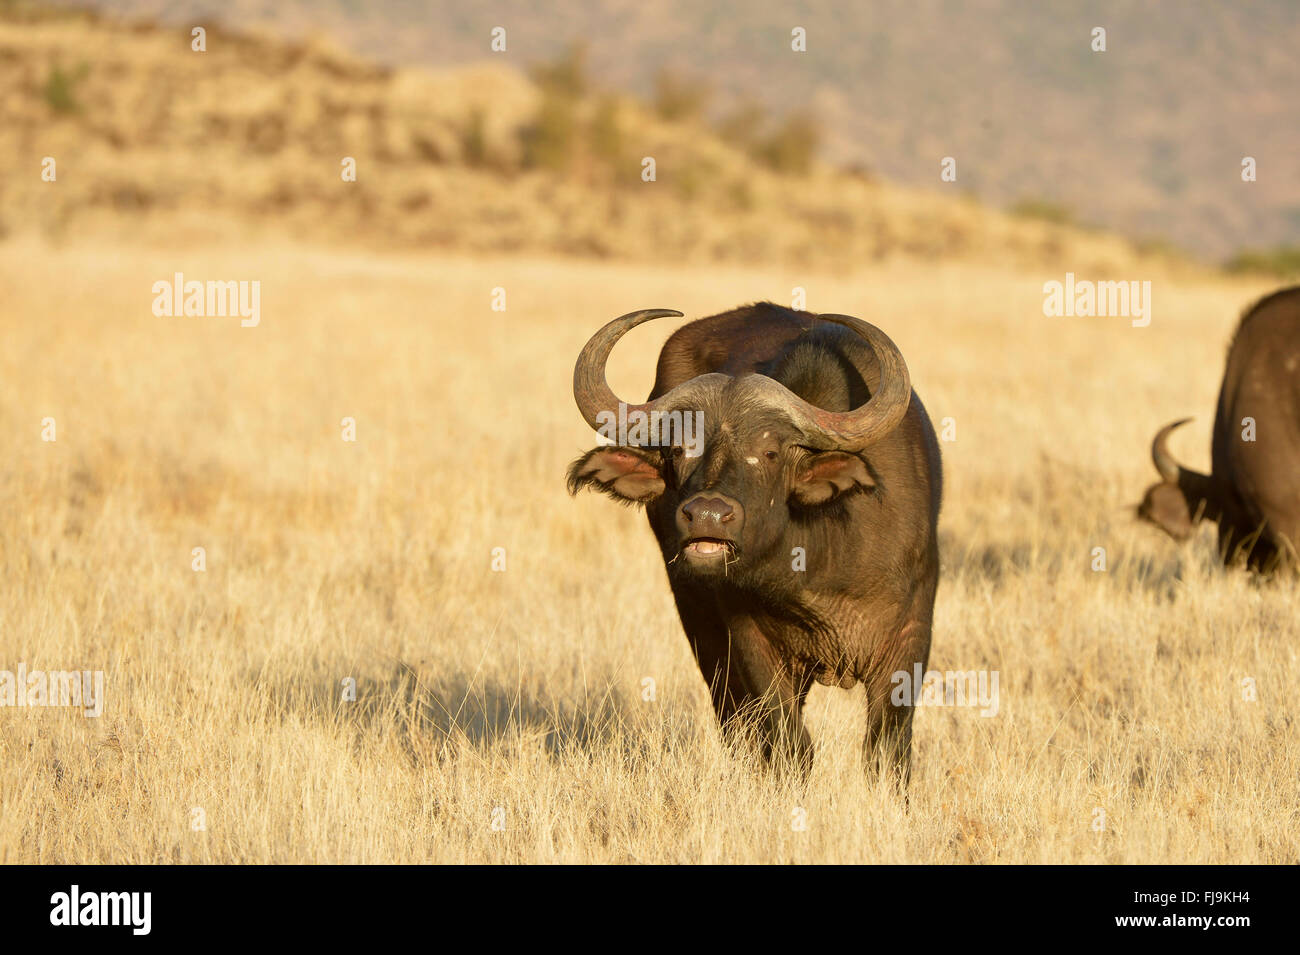 African Buffalo (Syncerus caffer) adult eating dry grass, Lewa Wildlife Conservancy, Kenya, October - Stock Image